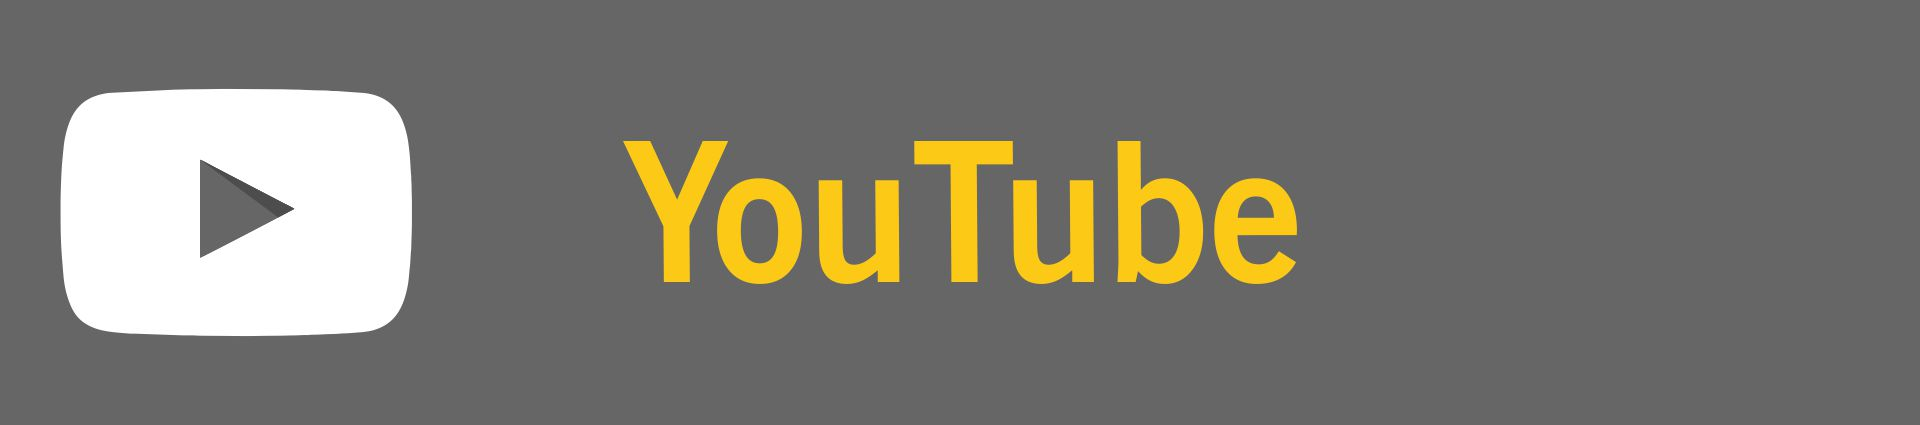 canal de youtube de reus transport